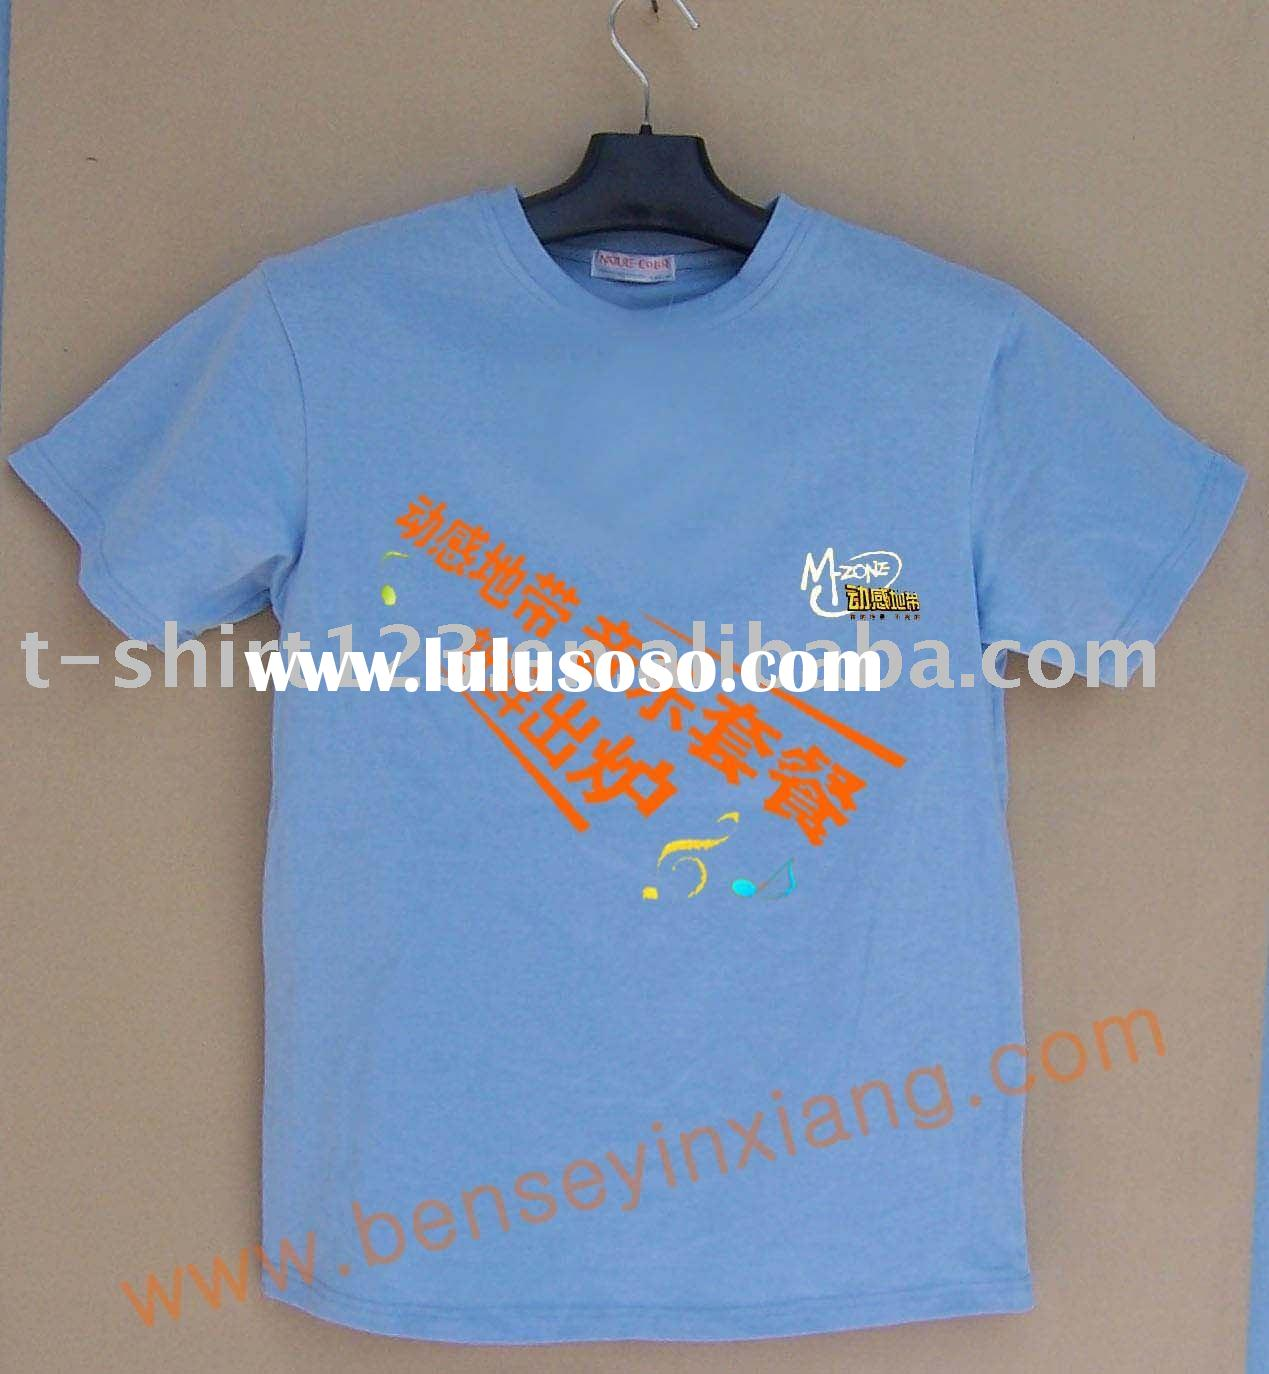 Printed wholesale t shirt printed wholesale t shirt for Printable t shirts wholesale